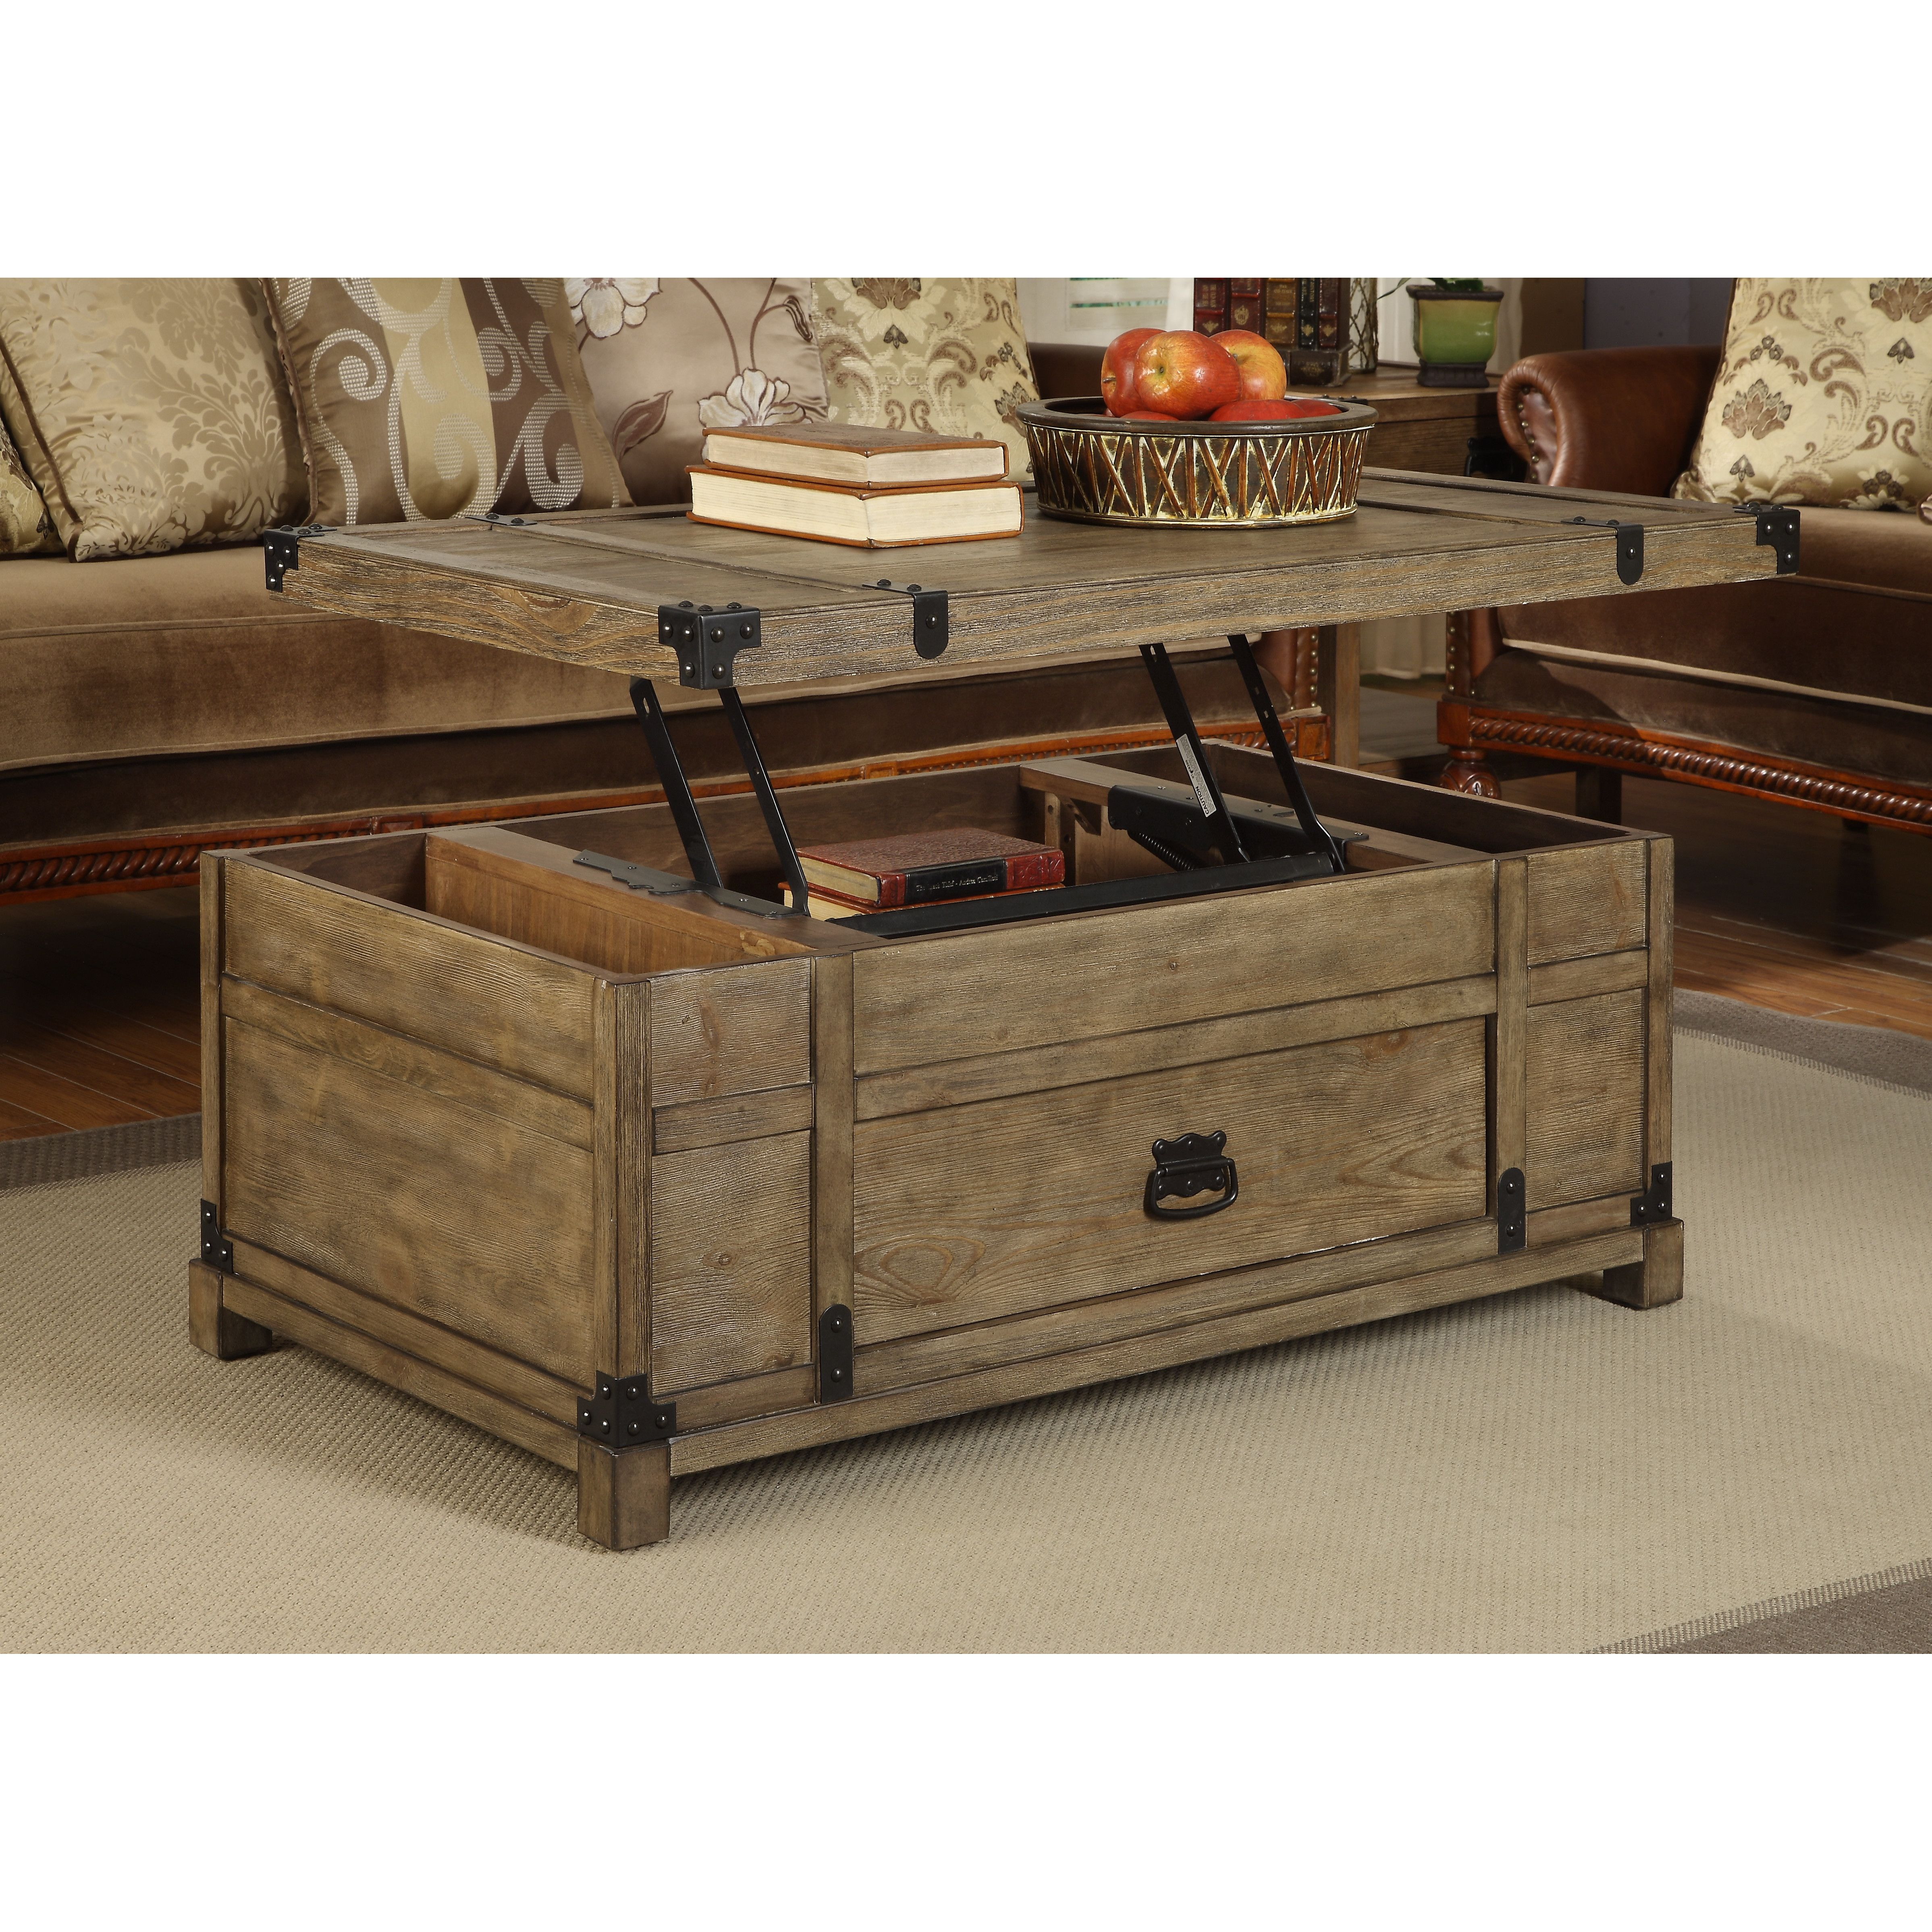 Talia Coffee Table Chest Coffee Table Lift Coffee Table Coffee